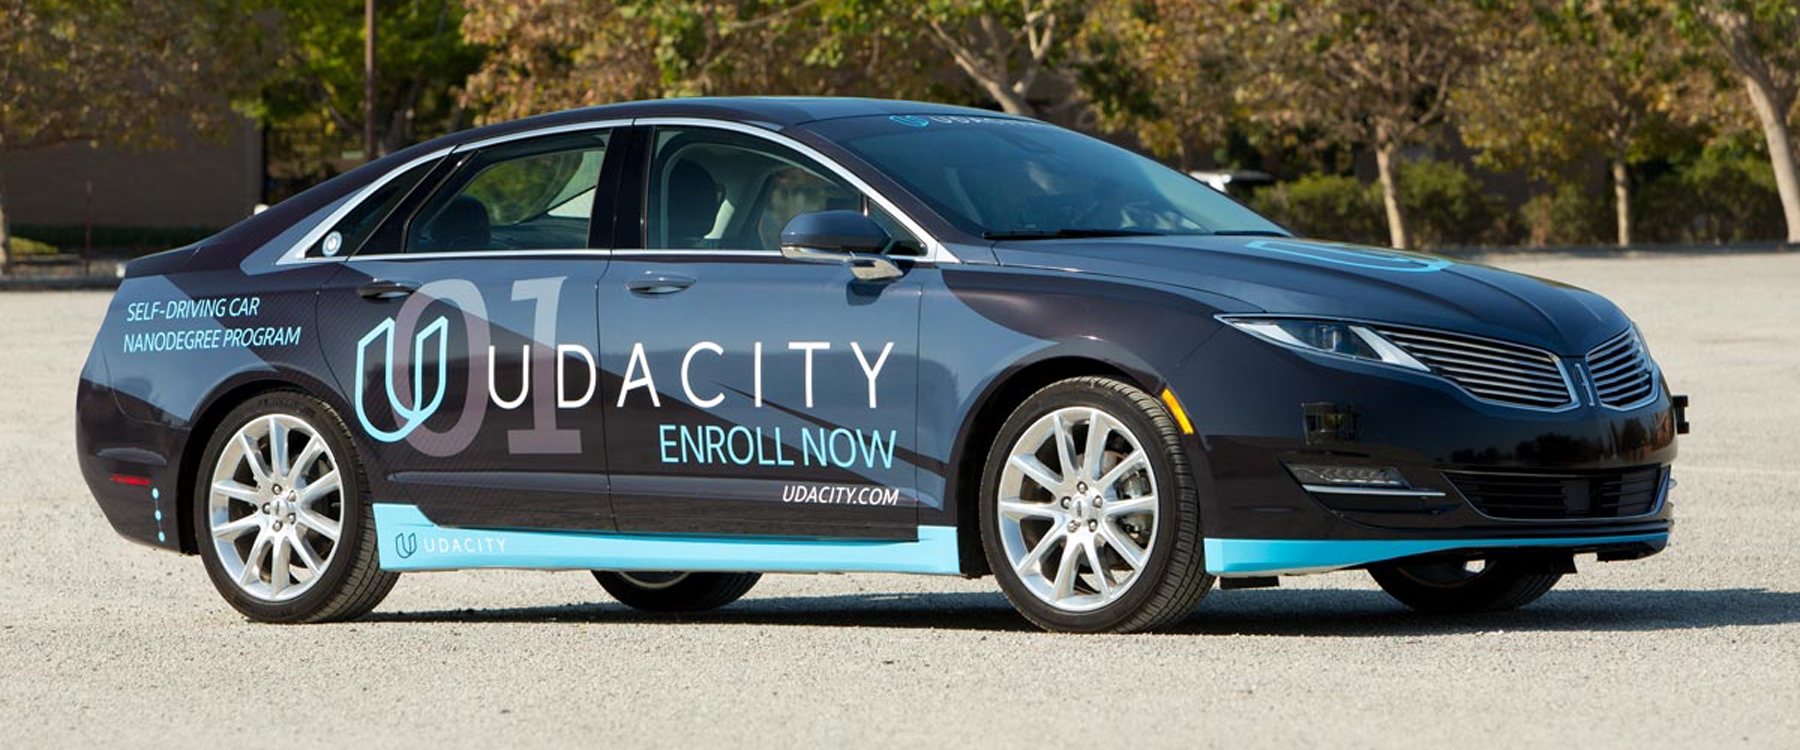 Udacity modified this Lincoln sedan to drive itself.